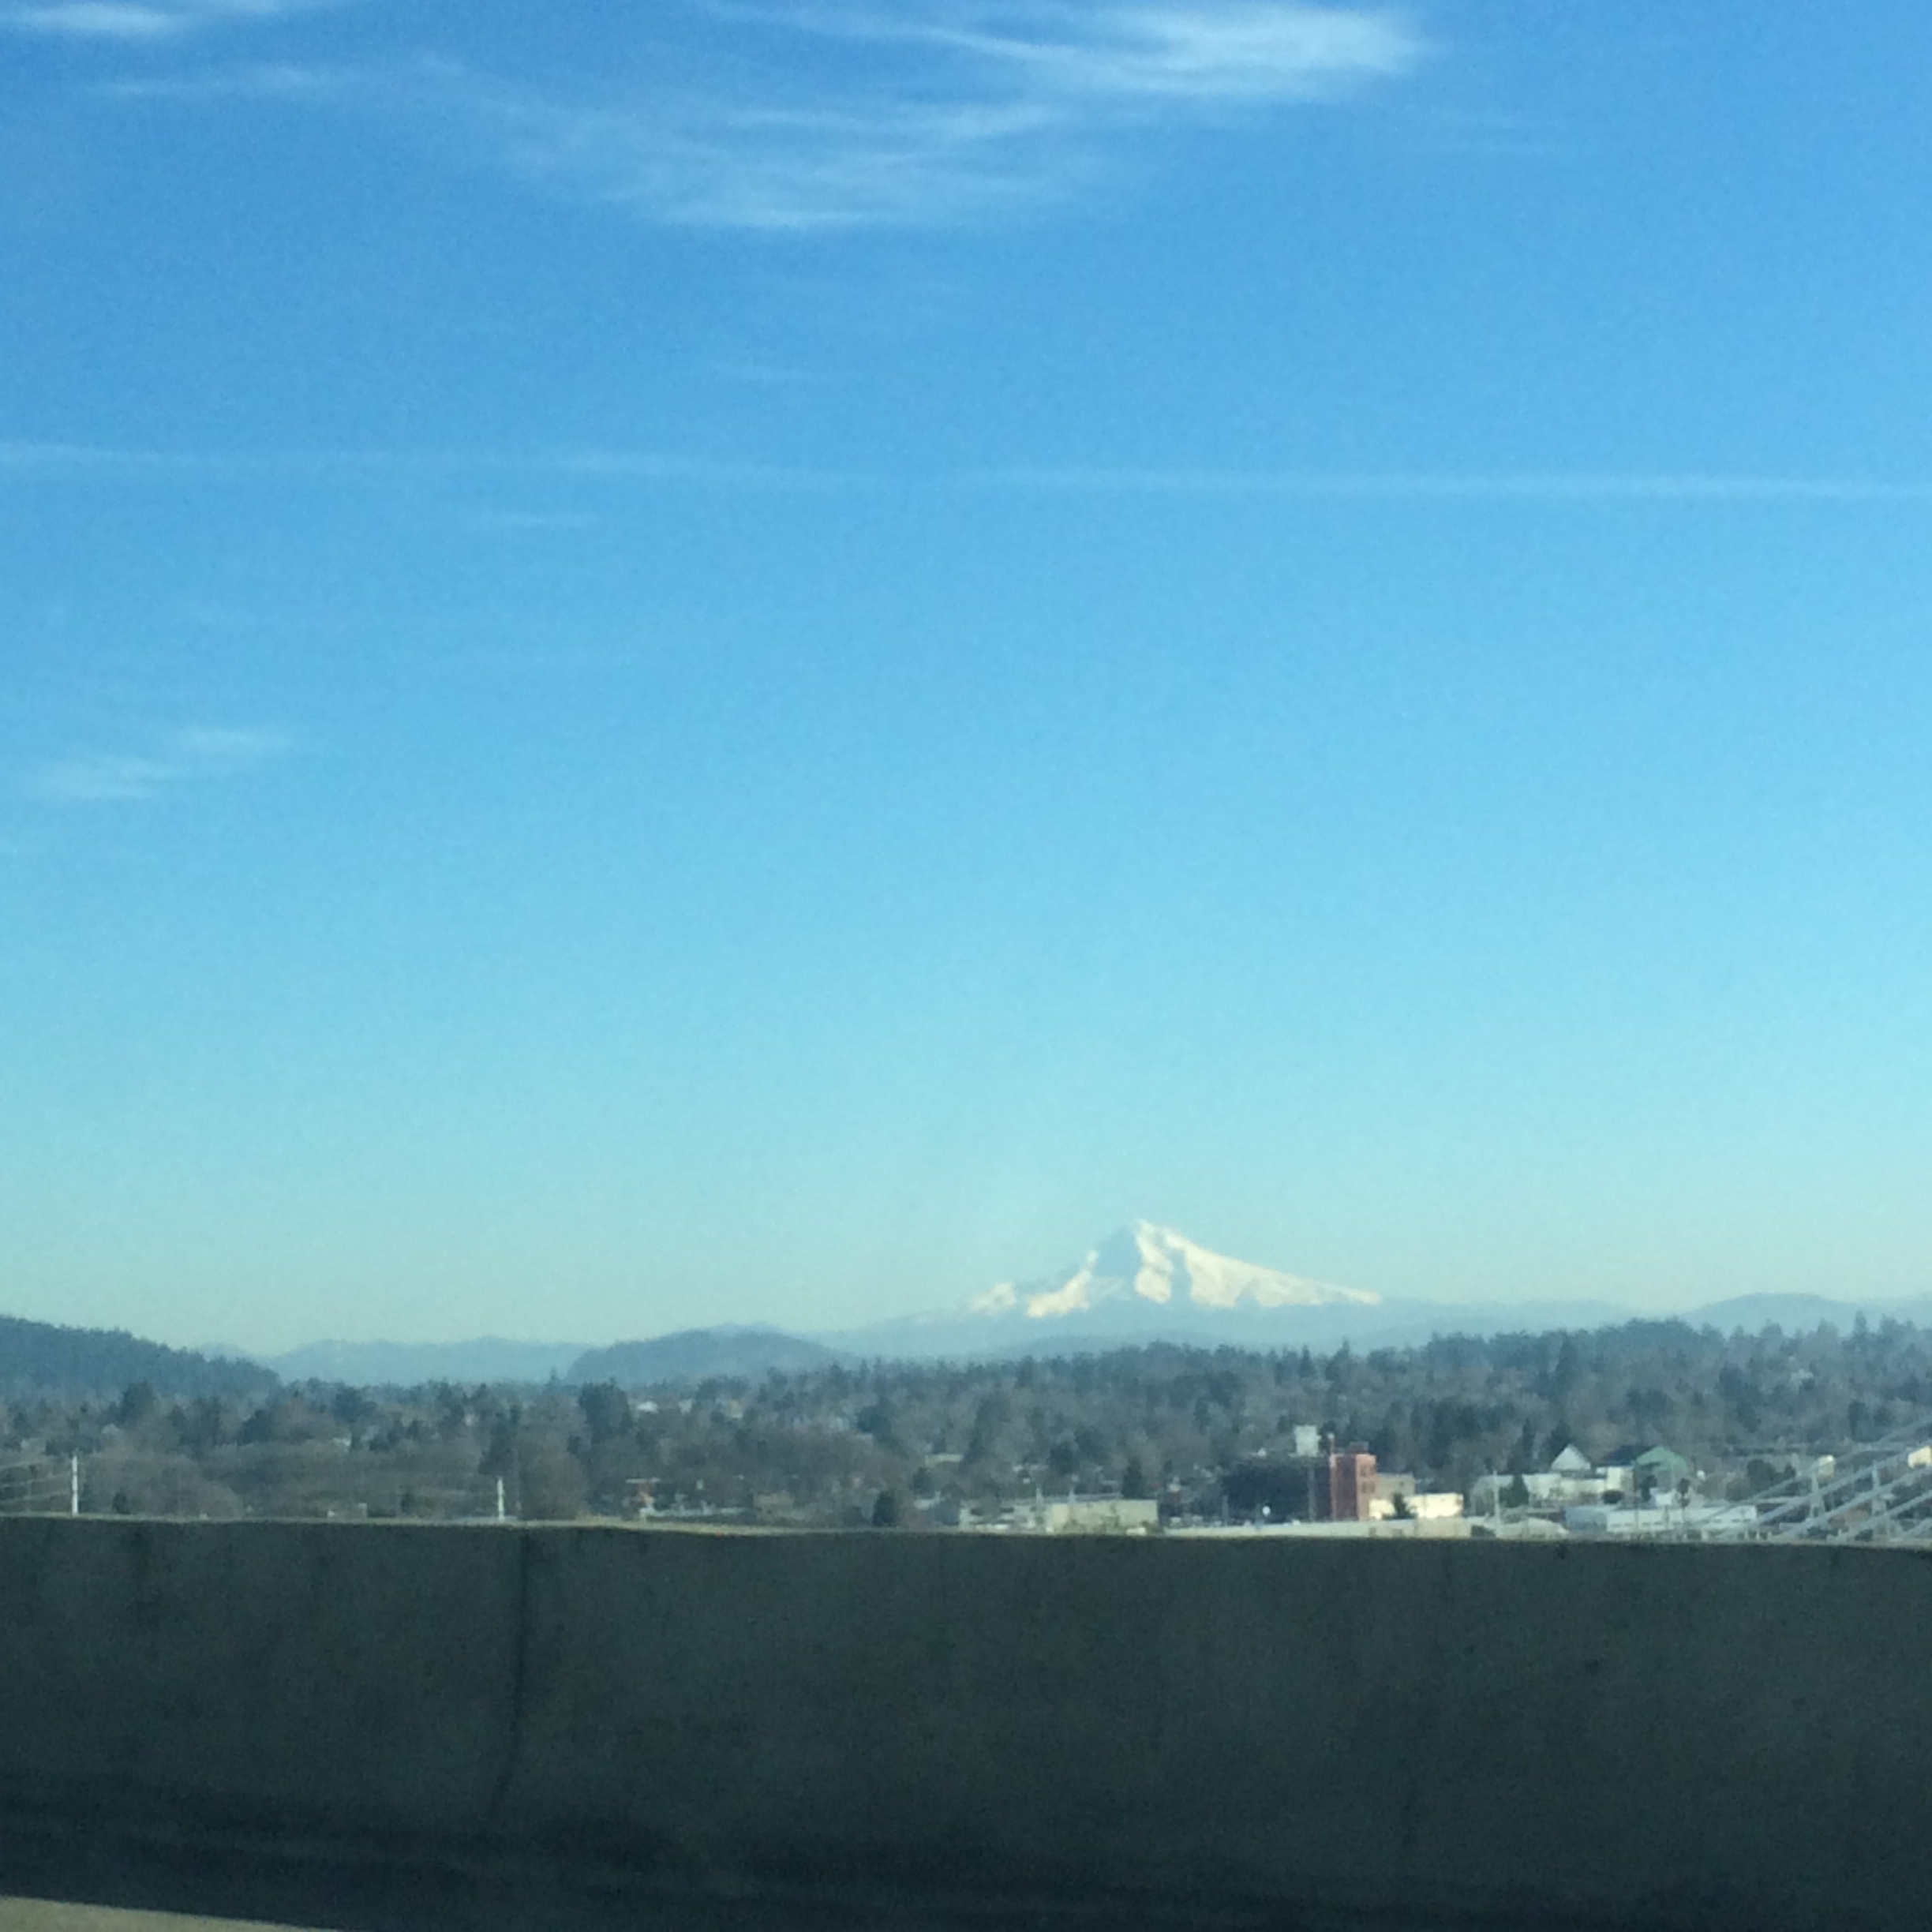 This was my first time seeing Mount Hood and even from a distance it is absolutely beautiful.